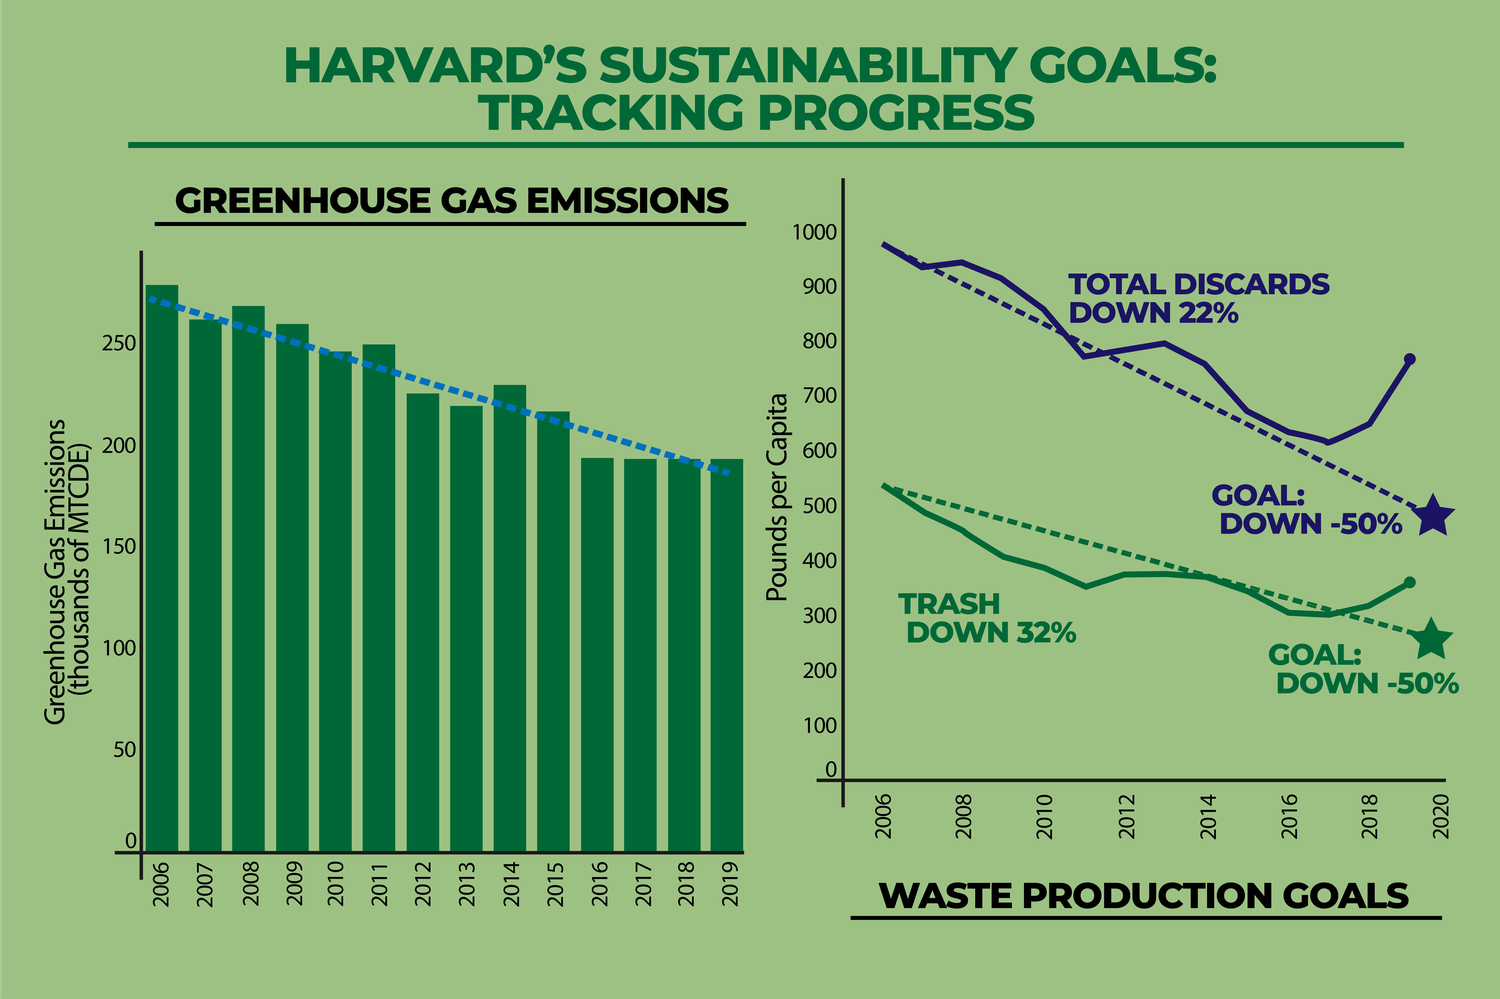 Despite reductions in campus greenhouse gas emissions, Harvard failed to meet 2020 waste and water reduction goals set forth by the University's 2014 Sustainability Plan.